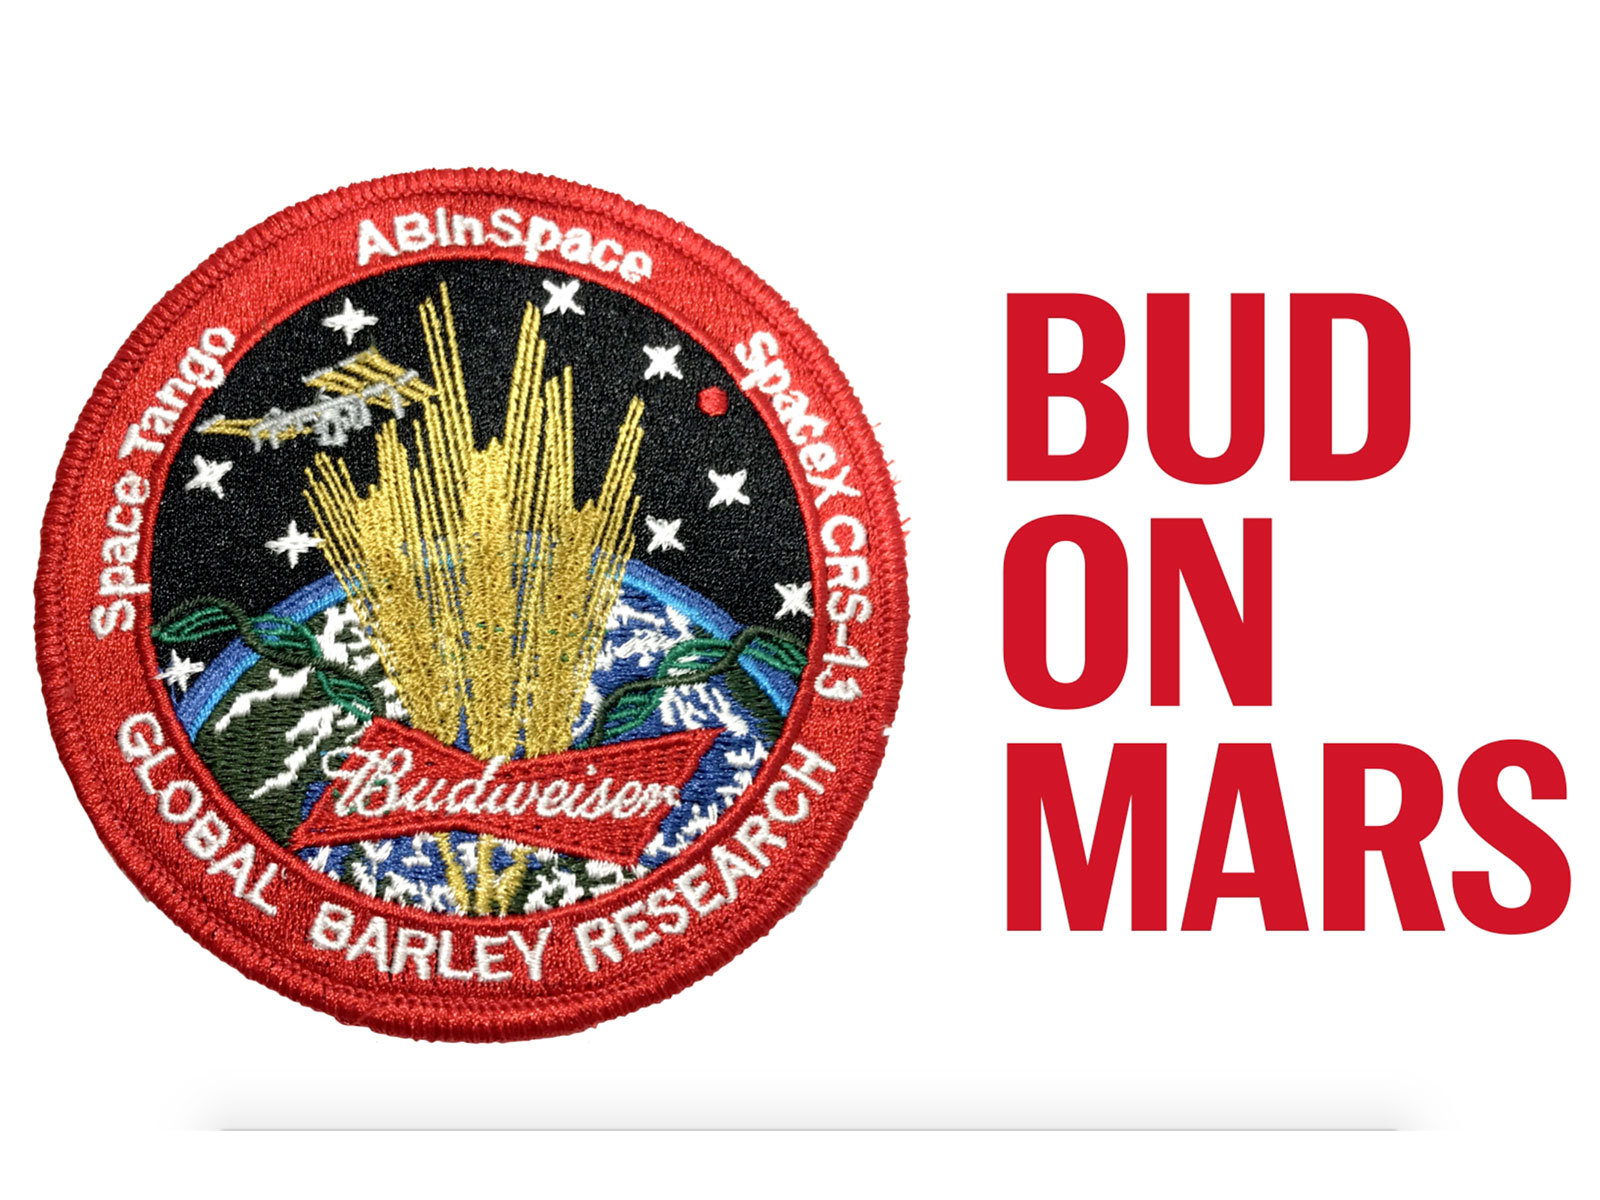 Beermaker Budweiser To Send Barley Seeds To International Space Station